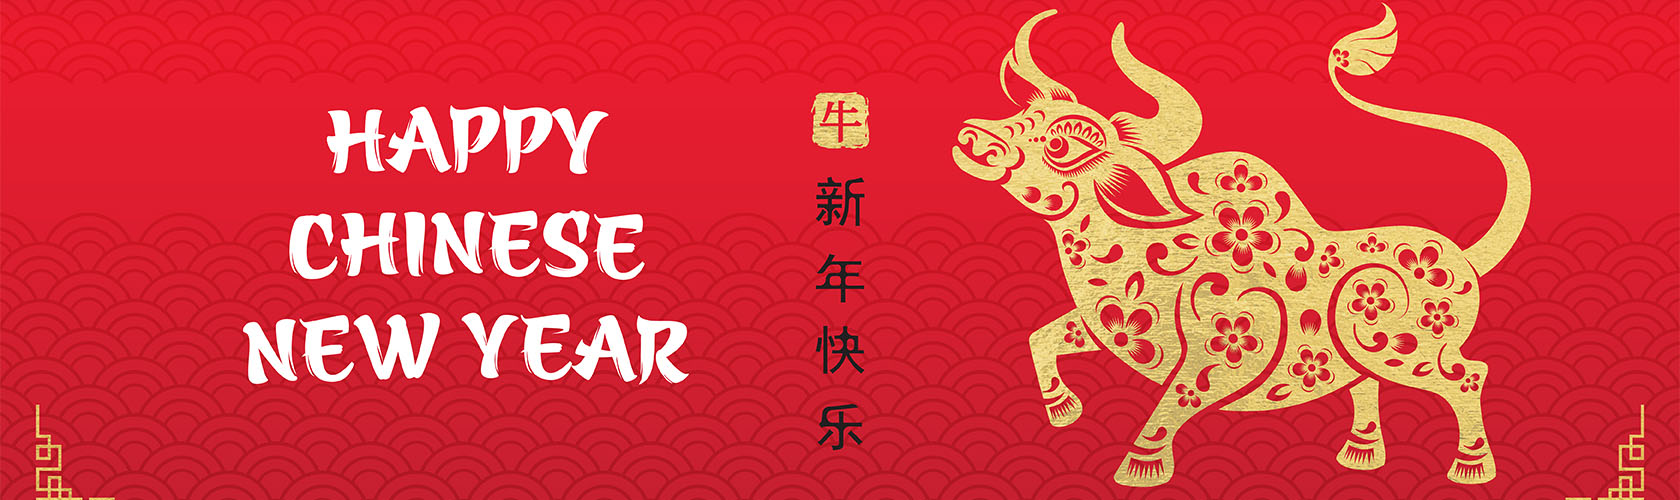 Happy Chinese New Year with an image of a gold ox and Chinese symbols.